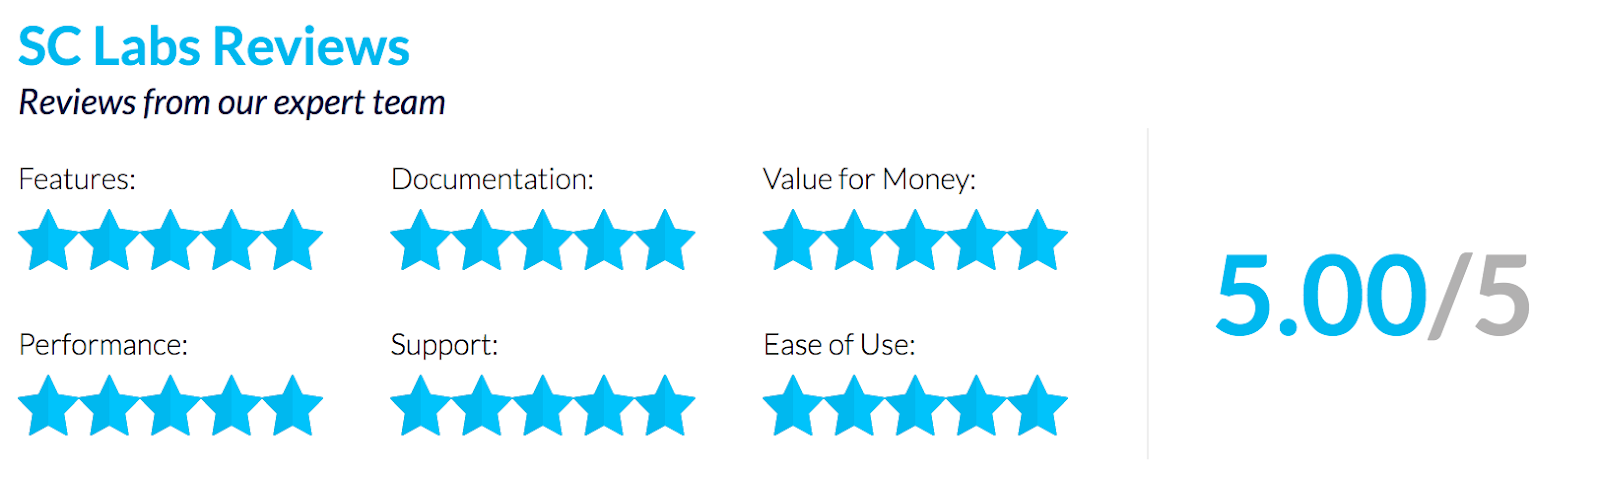 Rapid7's InsightVM Receives Five Stars from SC Magazine